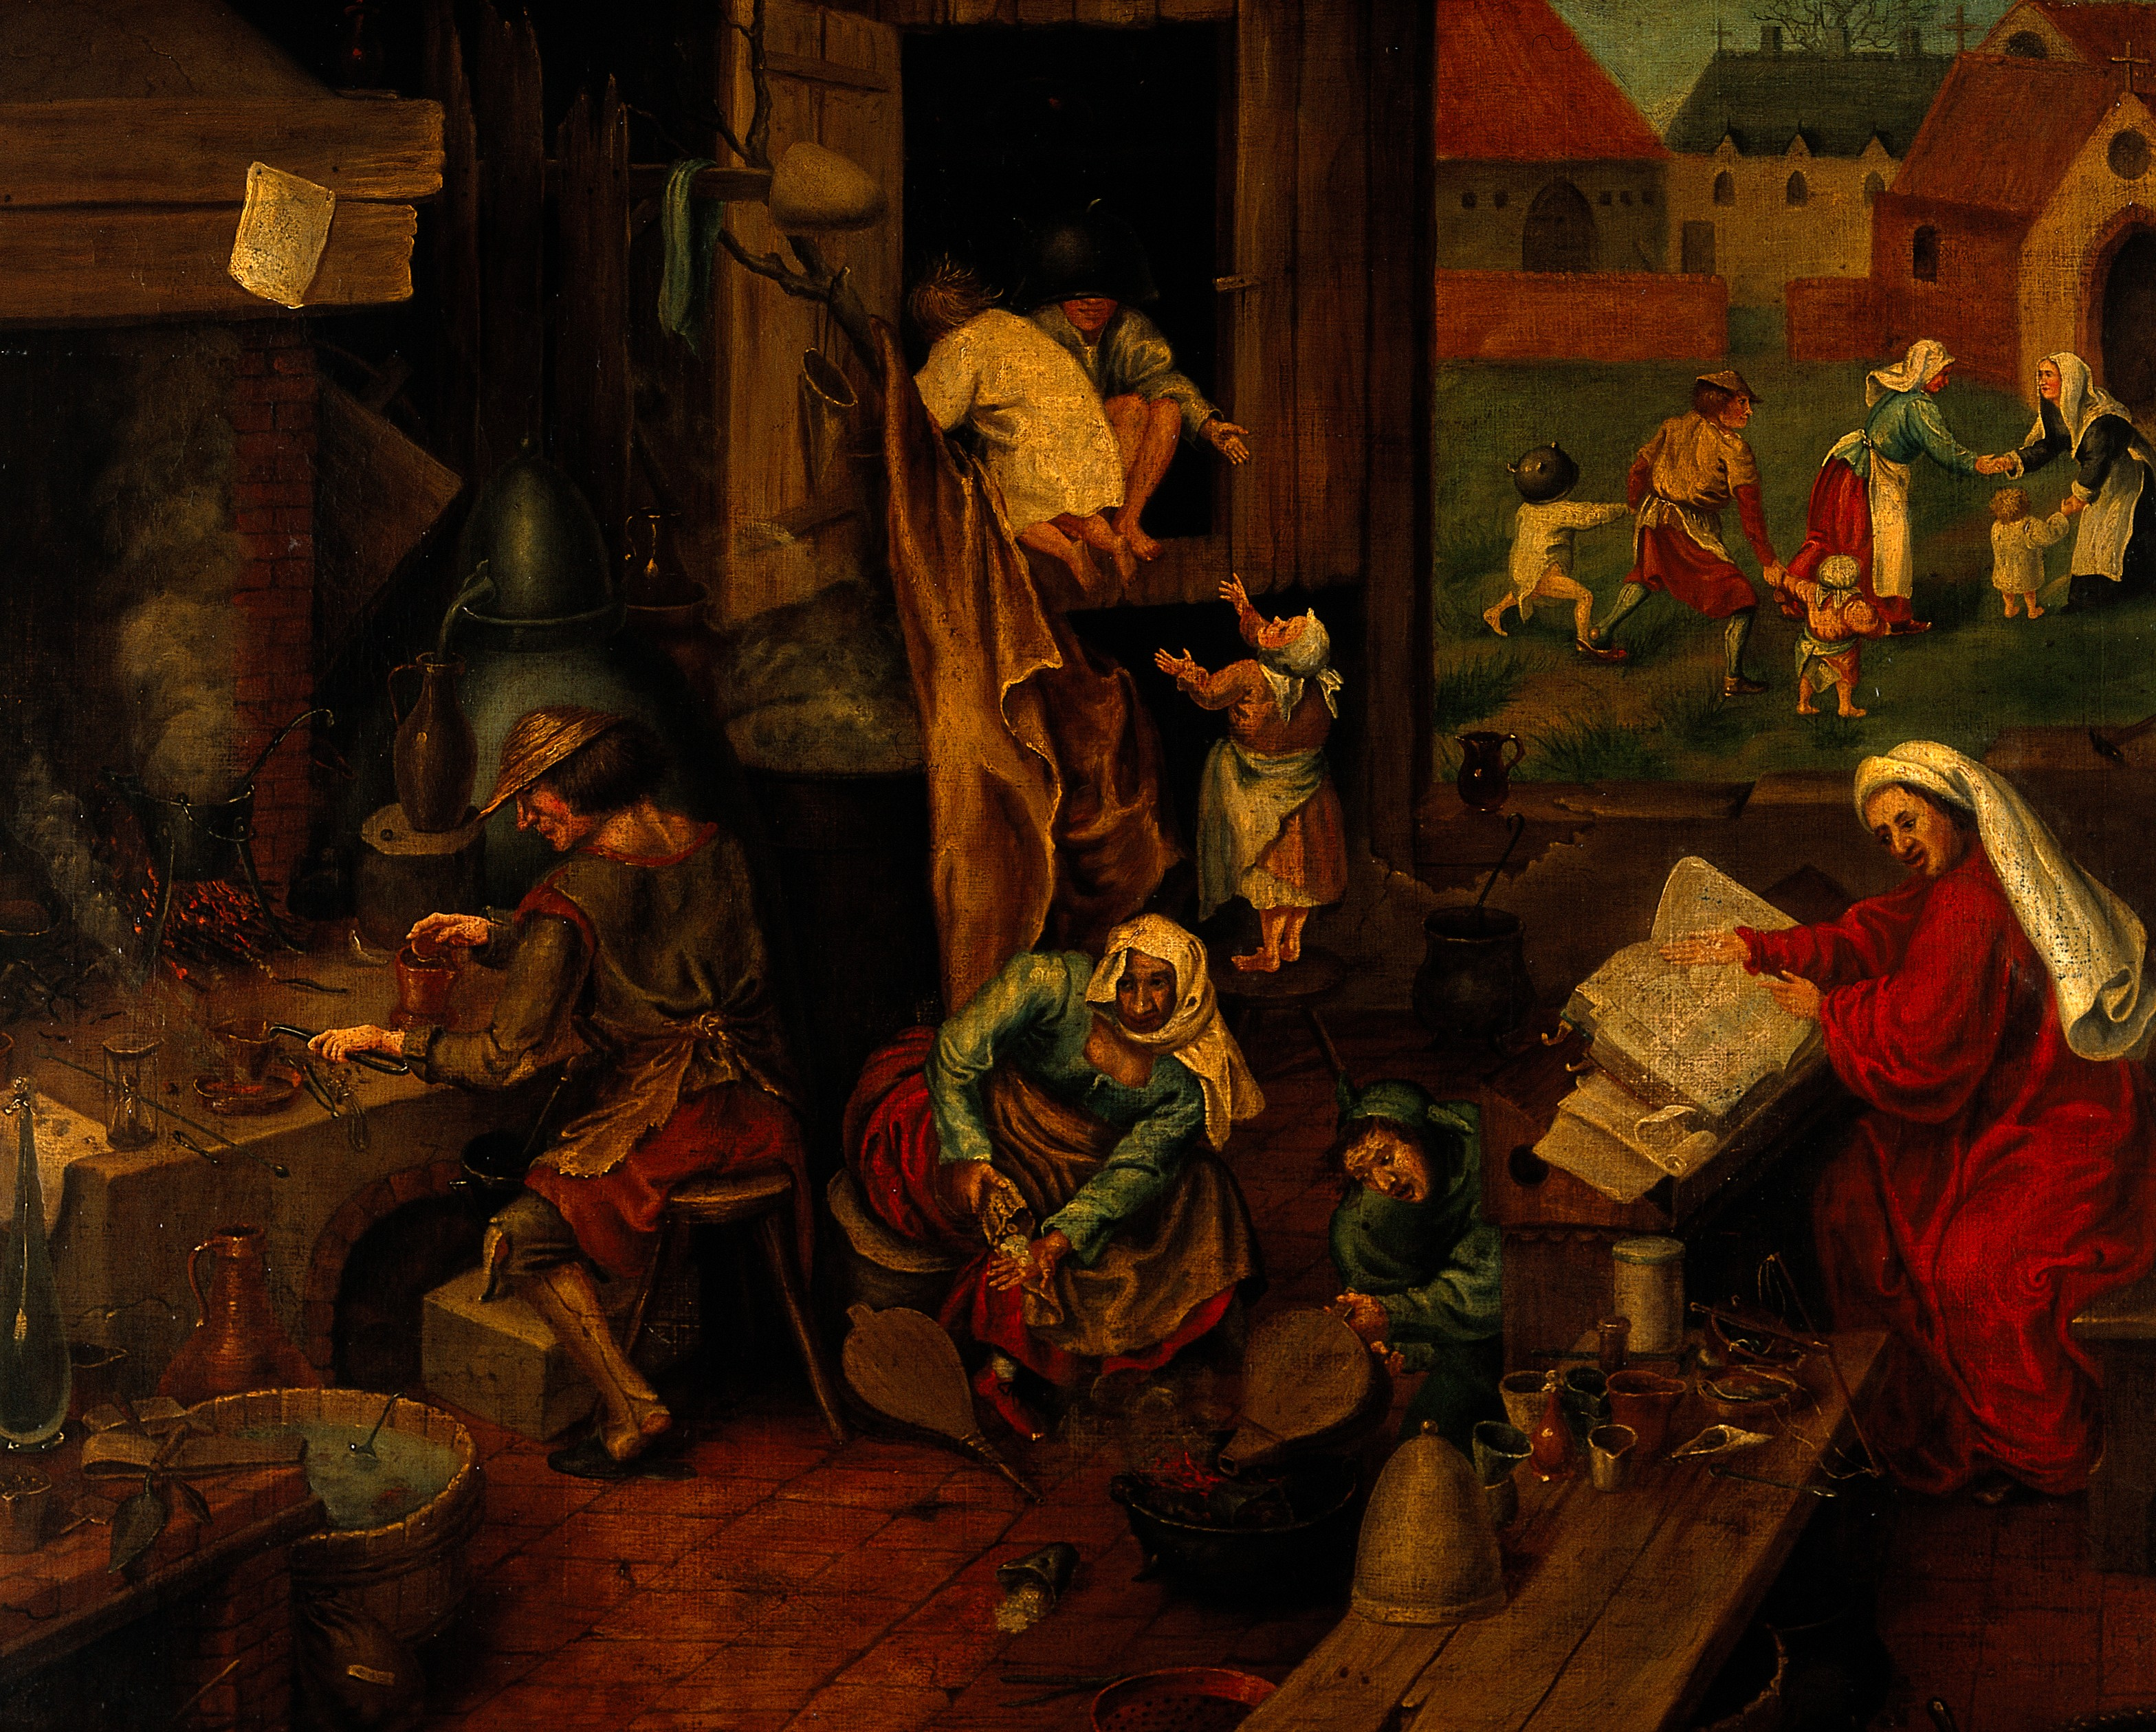 file the alchemist oil painting after pieter bruegel wellcome file the alchemist oil painting after pieter bruegel wellcome v0017671 jpg